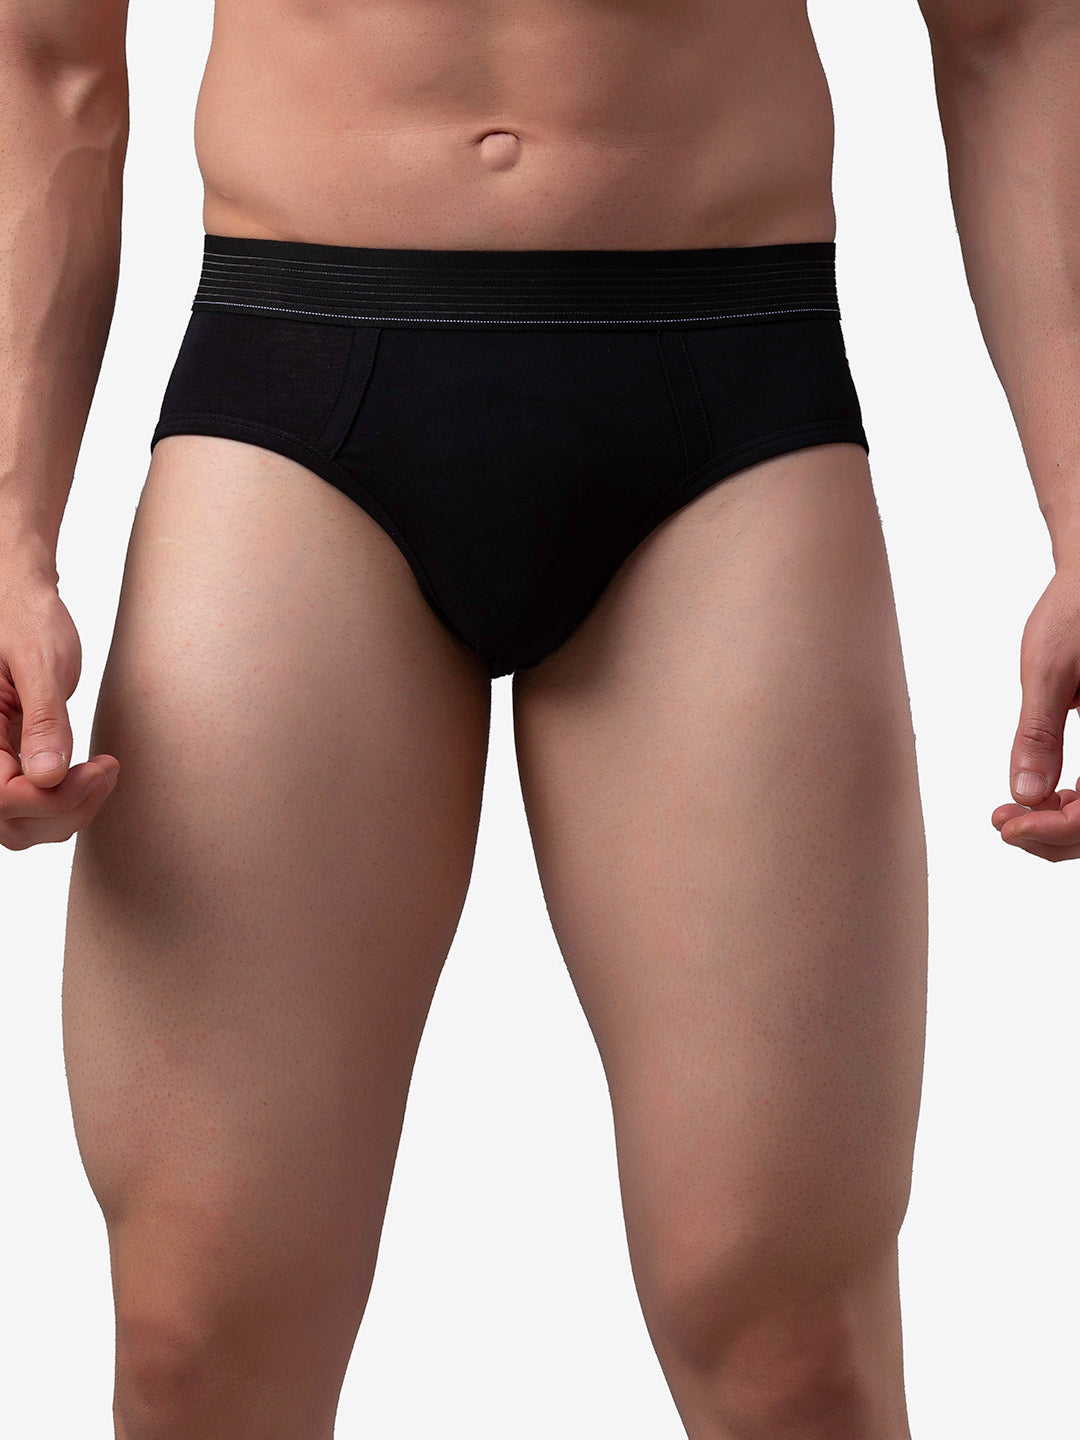 Underjeans Black Cotton Brief - Pack of 2